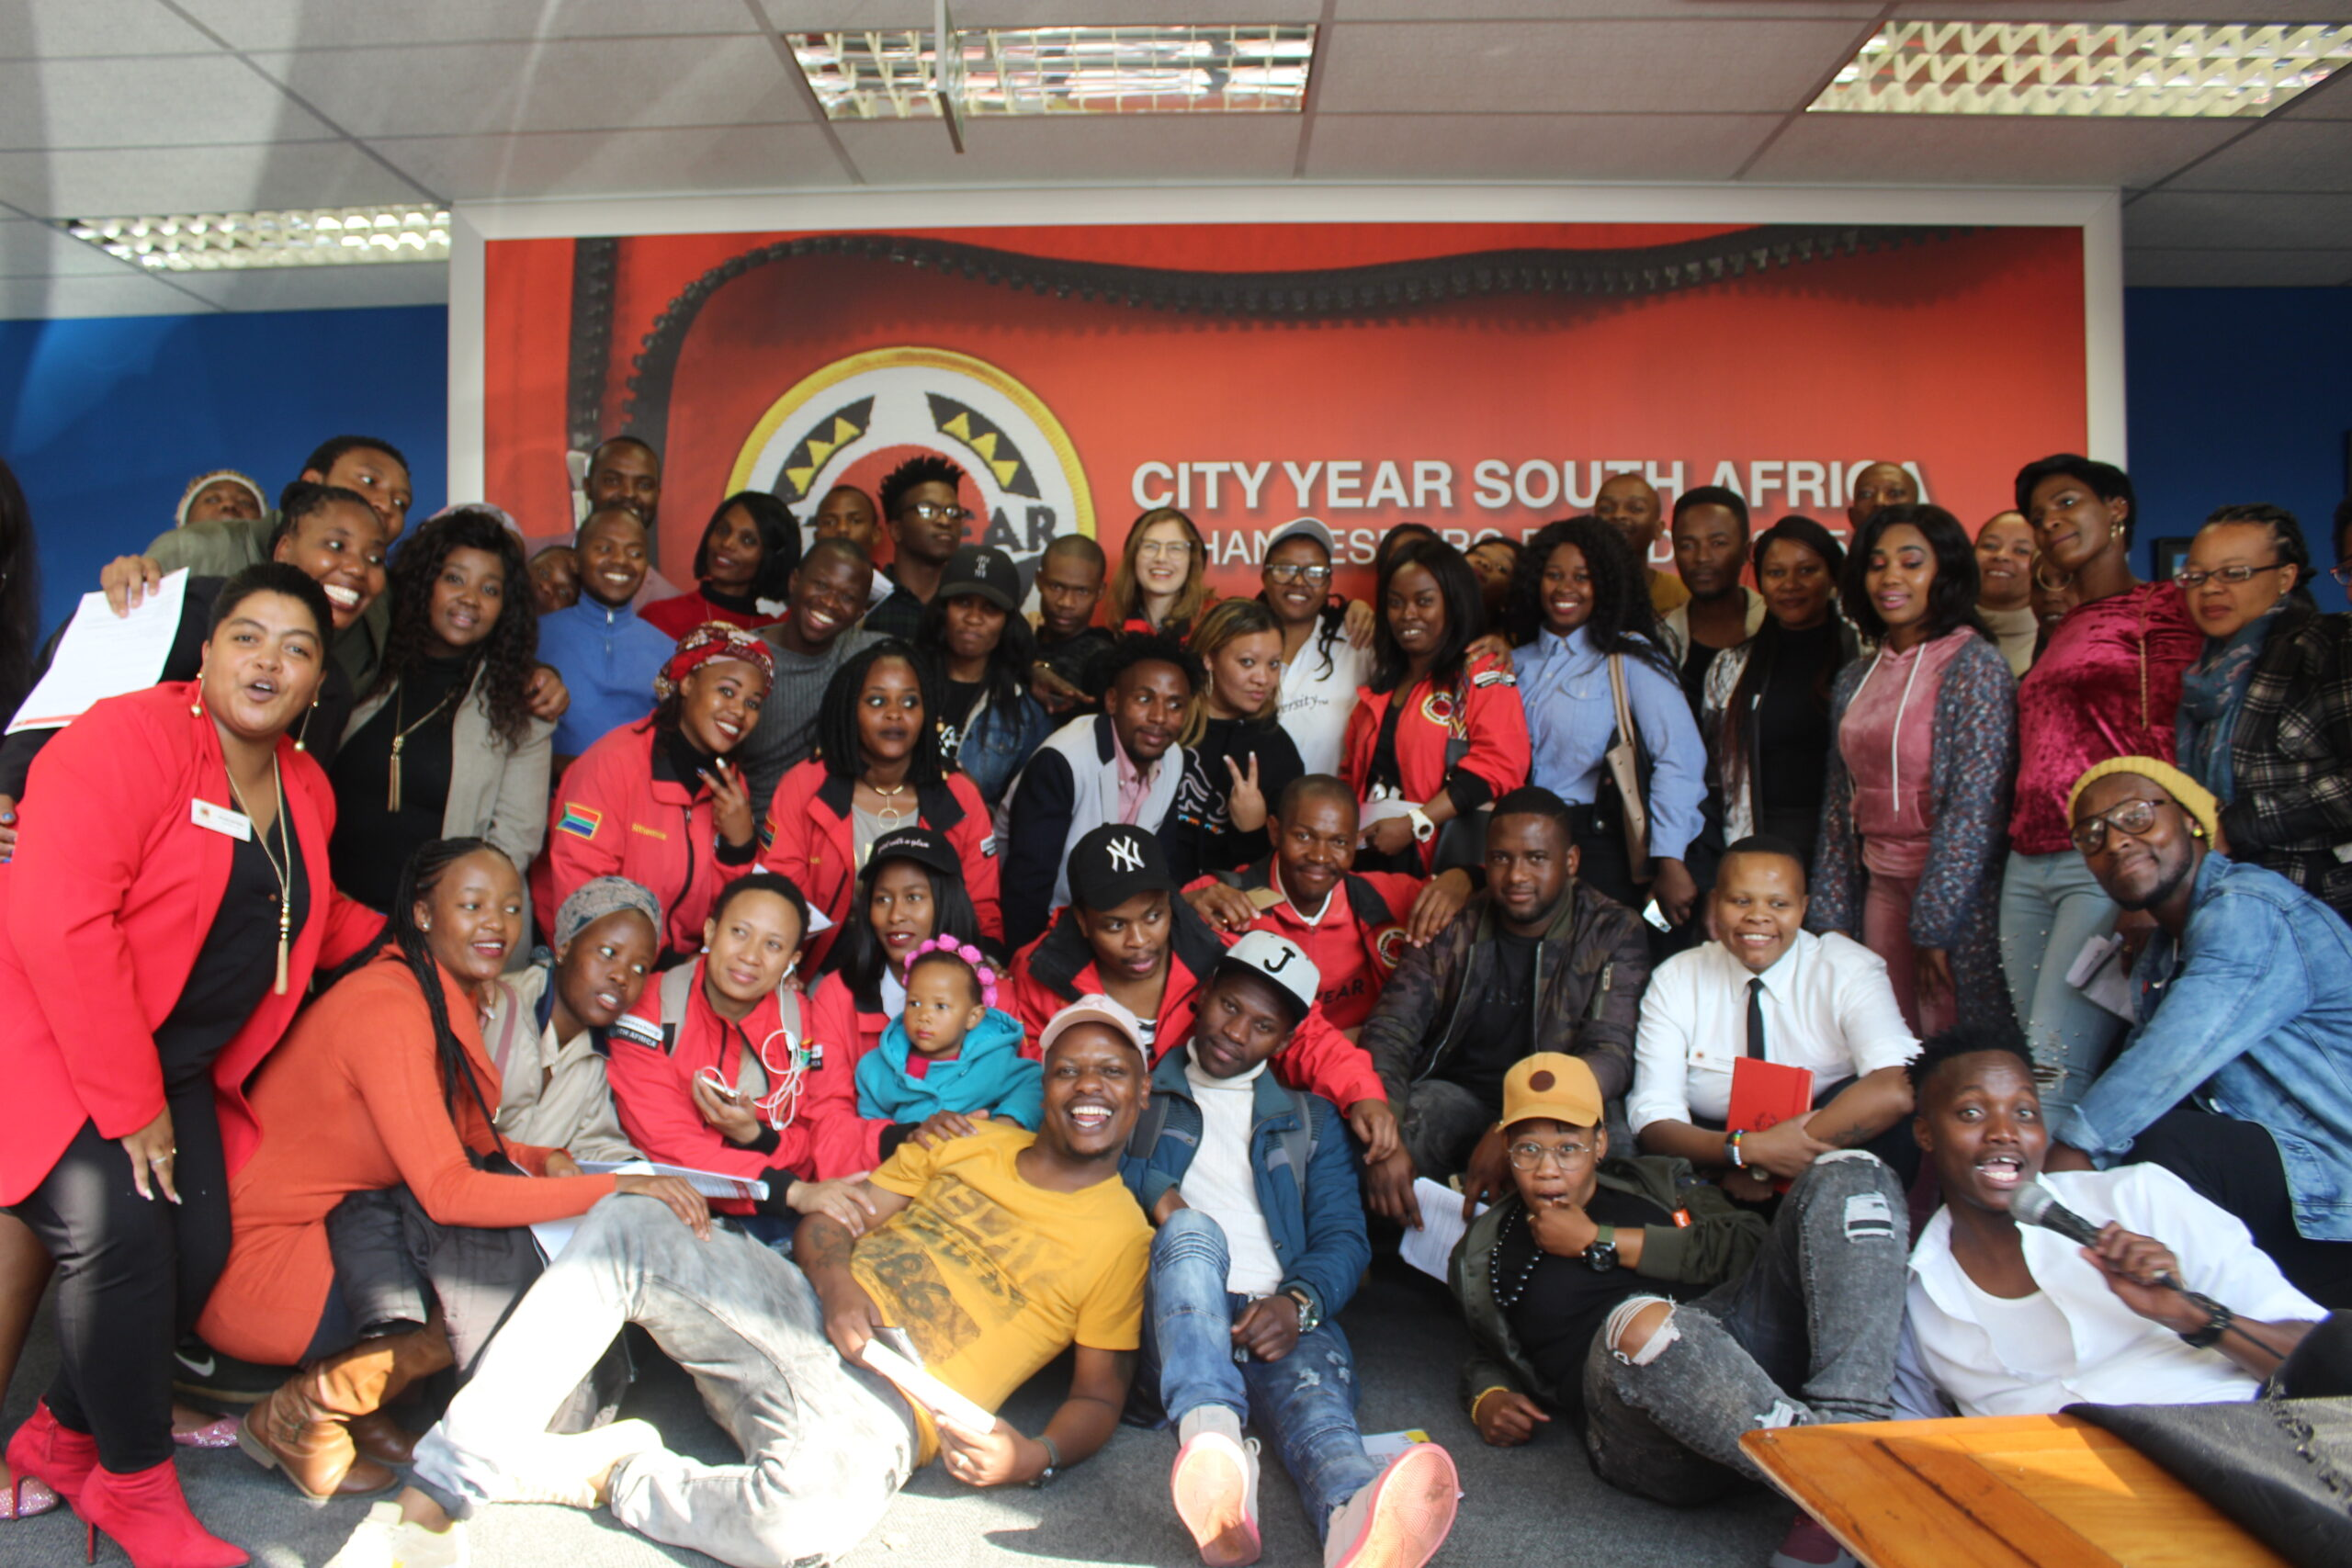 Group of City Year South Africa alumni